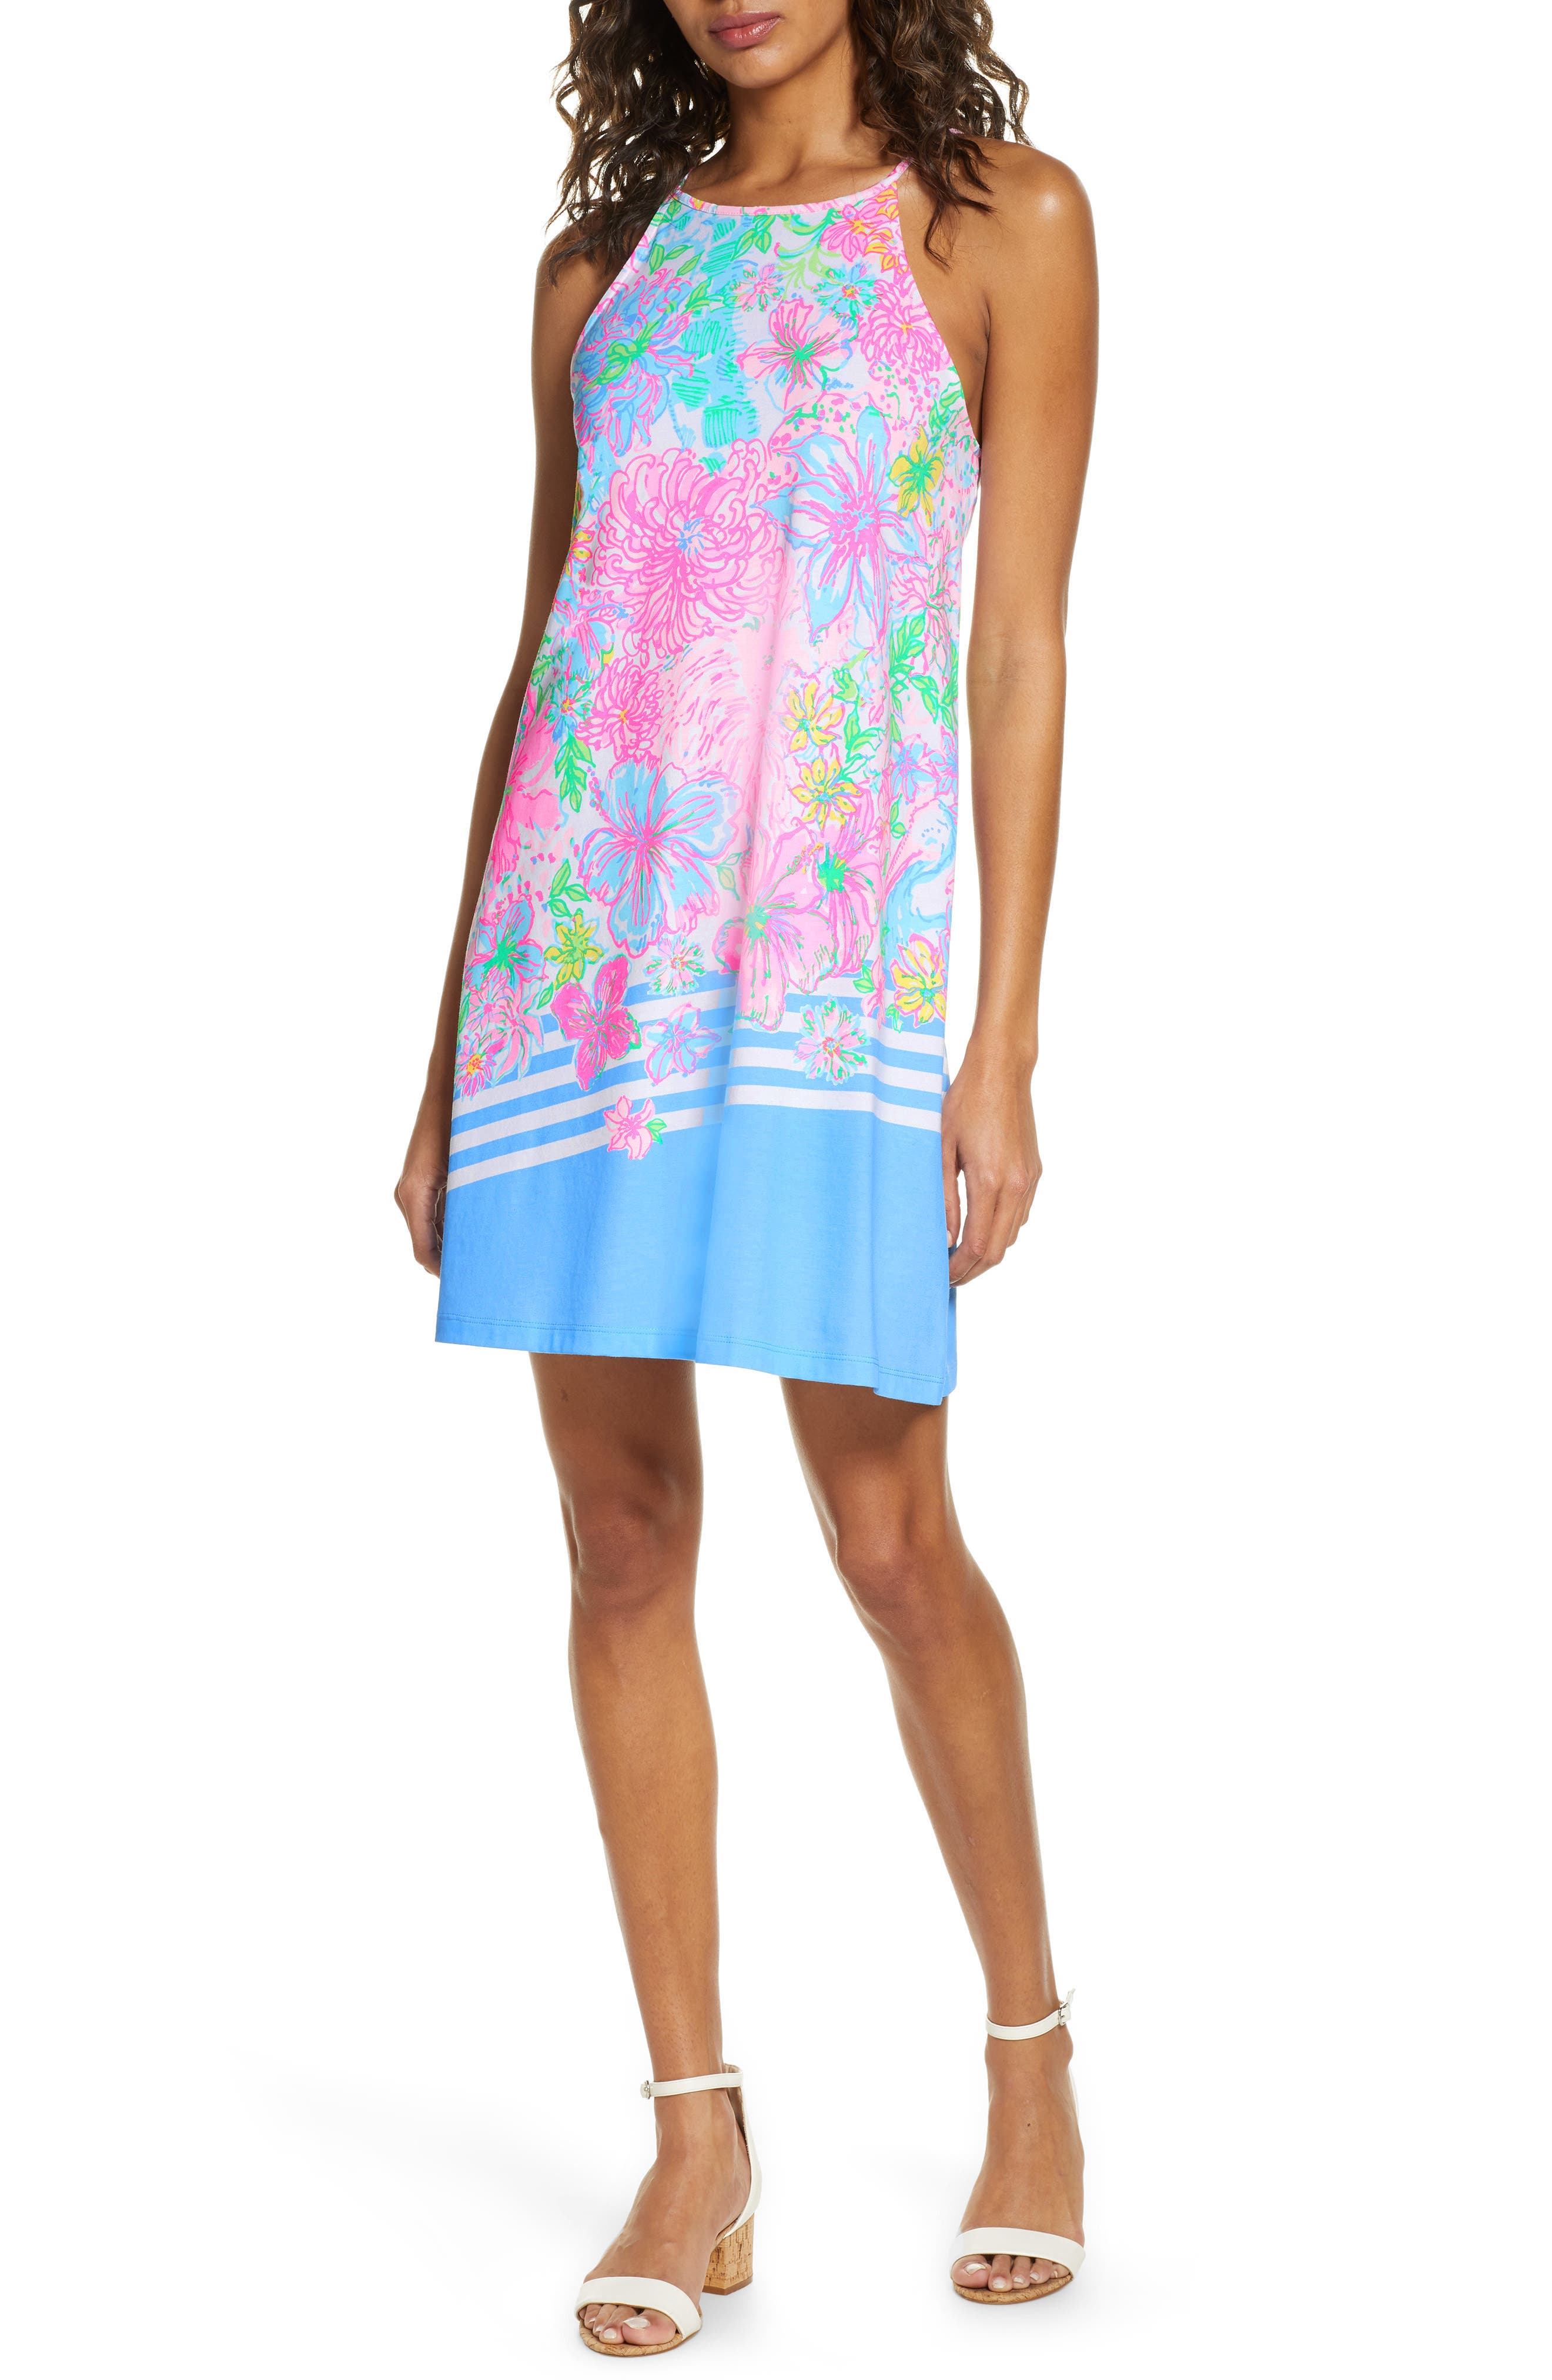 A breezy swing dress perfect for warm-weather adventures is patterned in a bright Lilly Pulitzer watercolor print. Style Name: Lilly Pulitzer Margot Sleeveless Swing Dress. Style Number: 6034281. Available in stores.